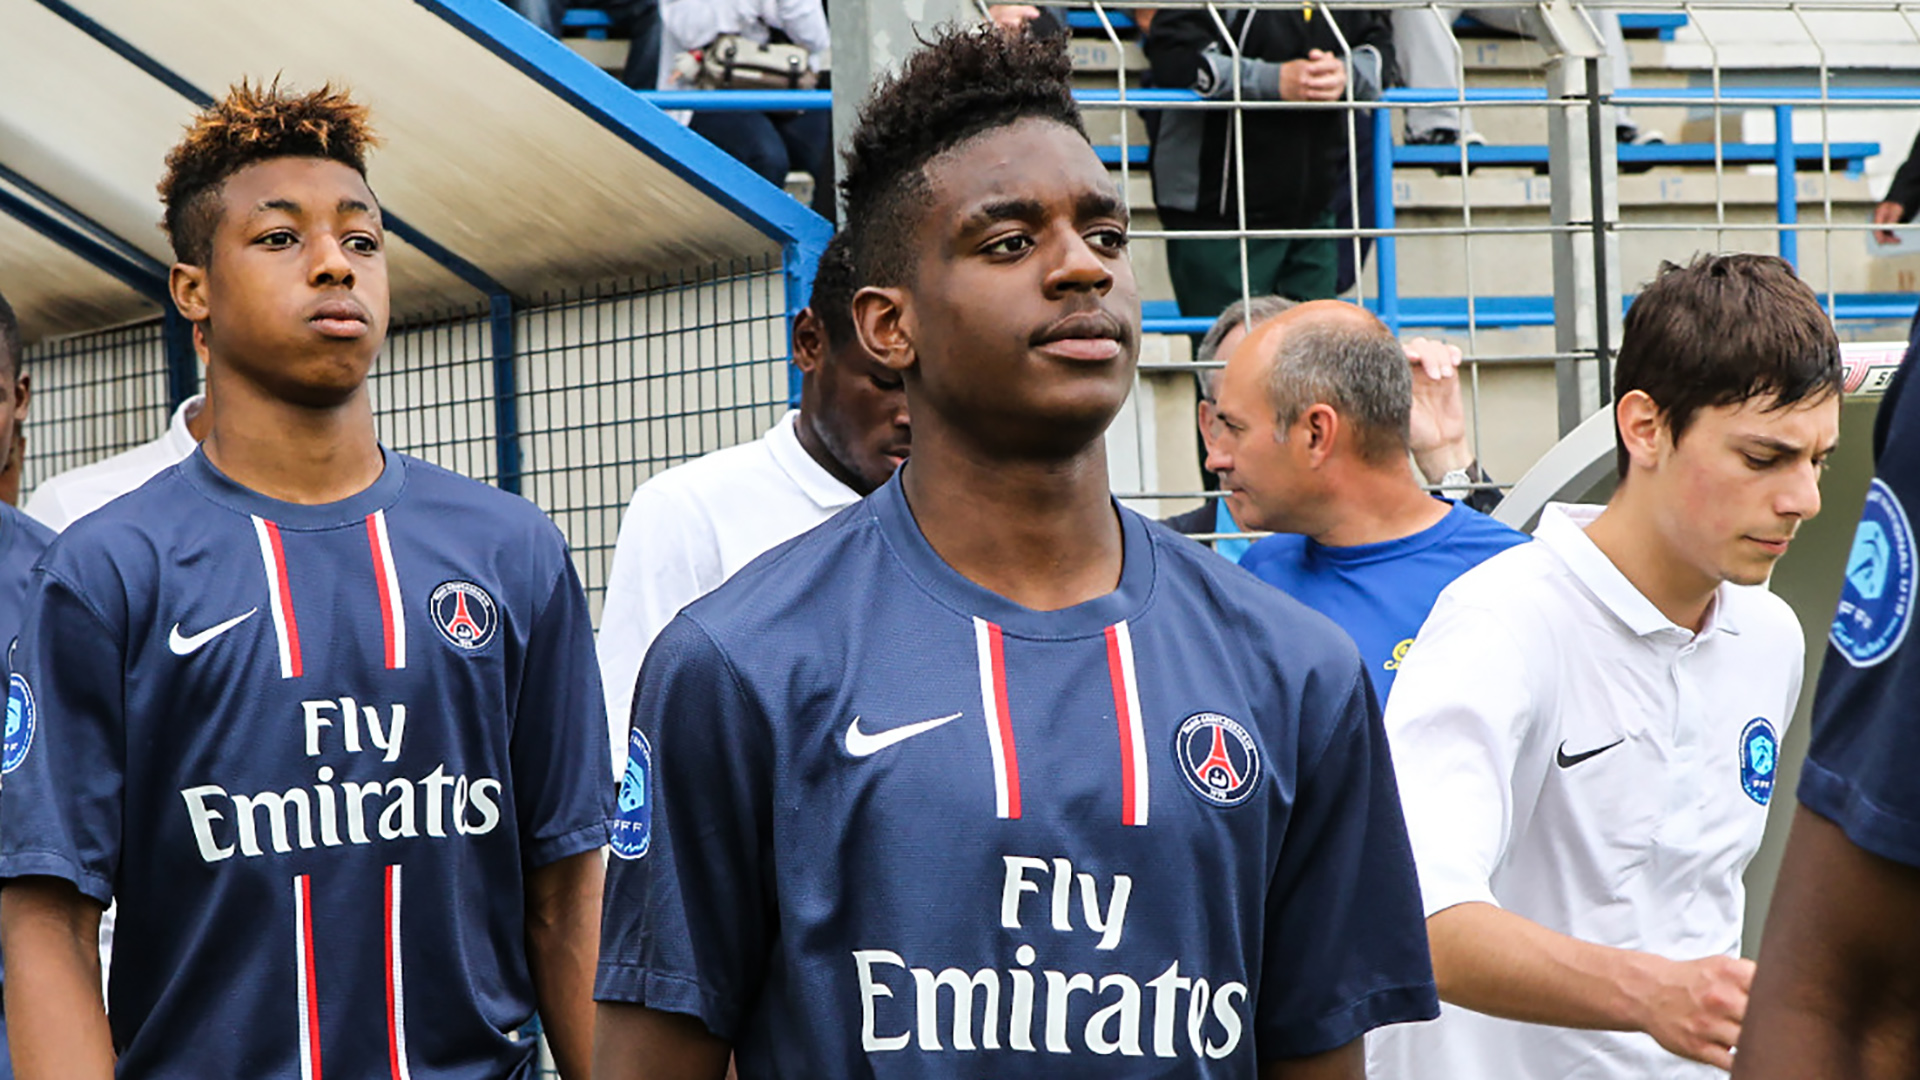 We will never forget you' - Former PSG academy player Diakiese ...